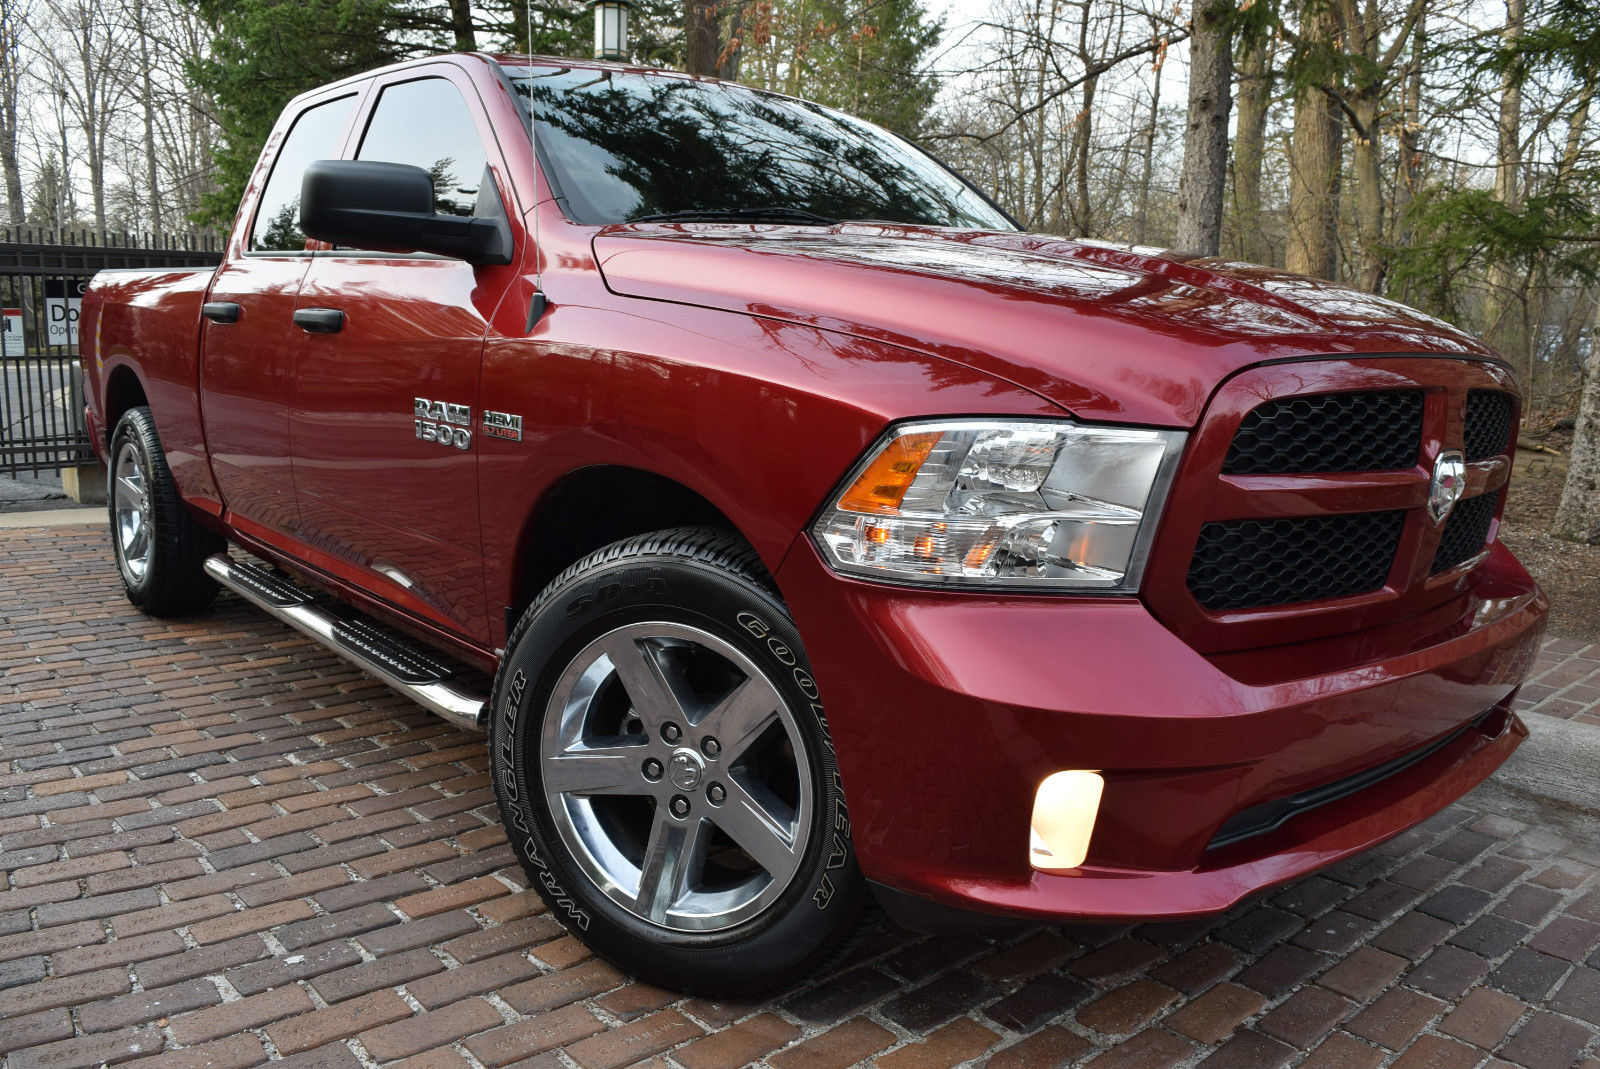 2015 ram 1500 st crew cab edition hemi powered for sale. Black Bedroom Furniture Sets. Home Design Ideas